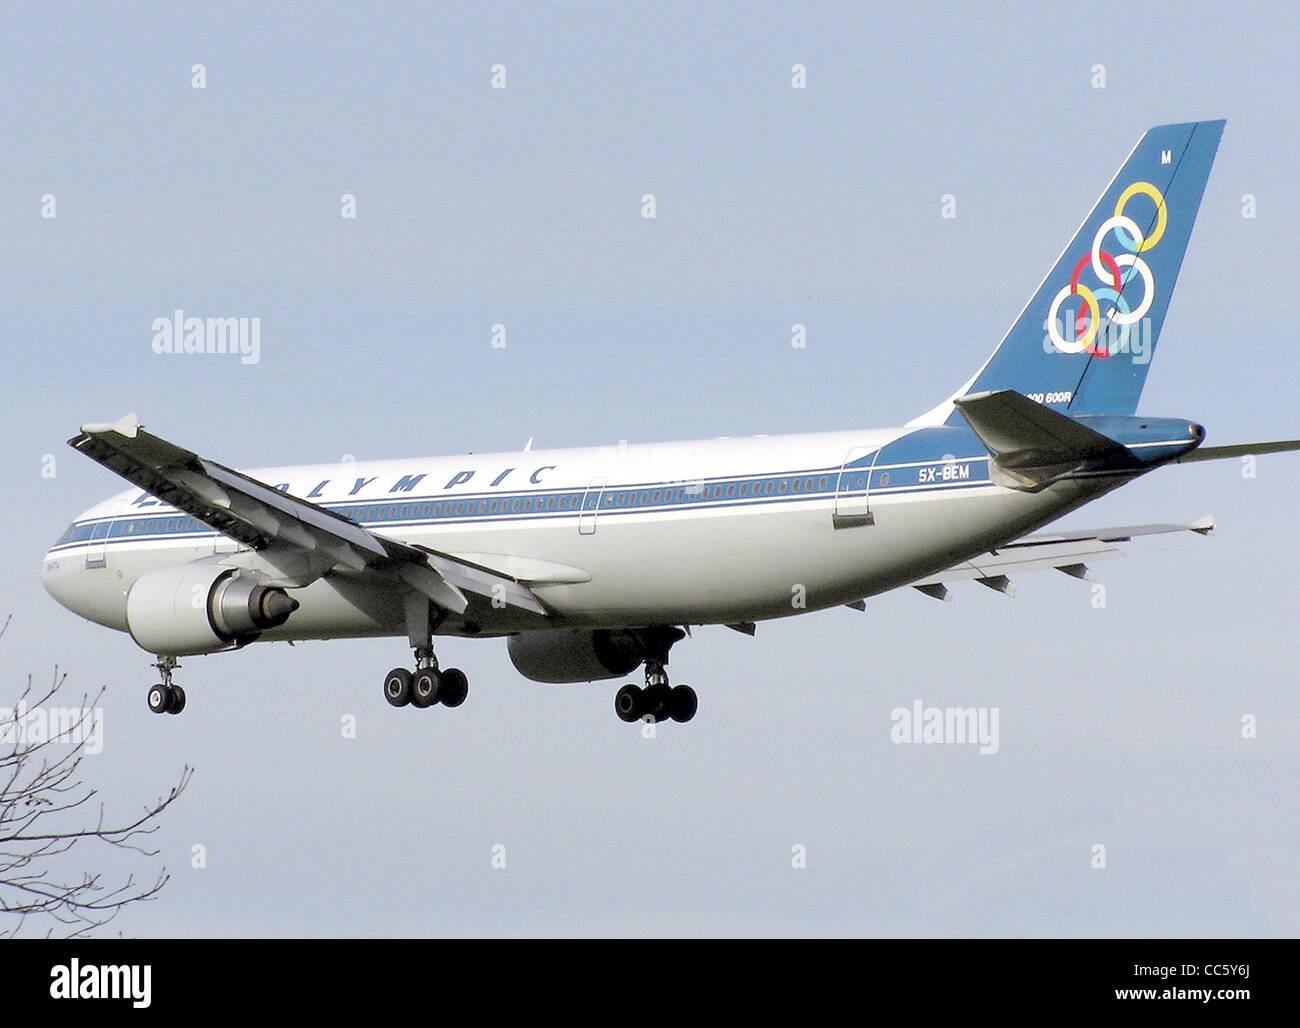 Olympic Airlines Airbus A300B4-600R landing at London Heathrow Airport, England. - Stock Image